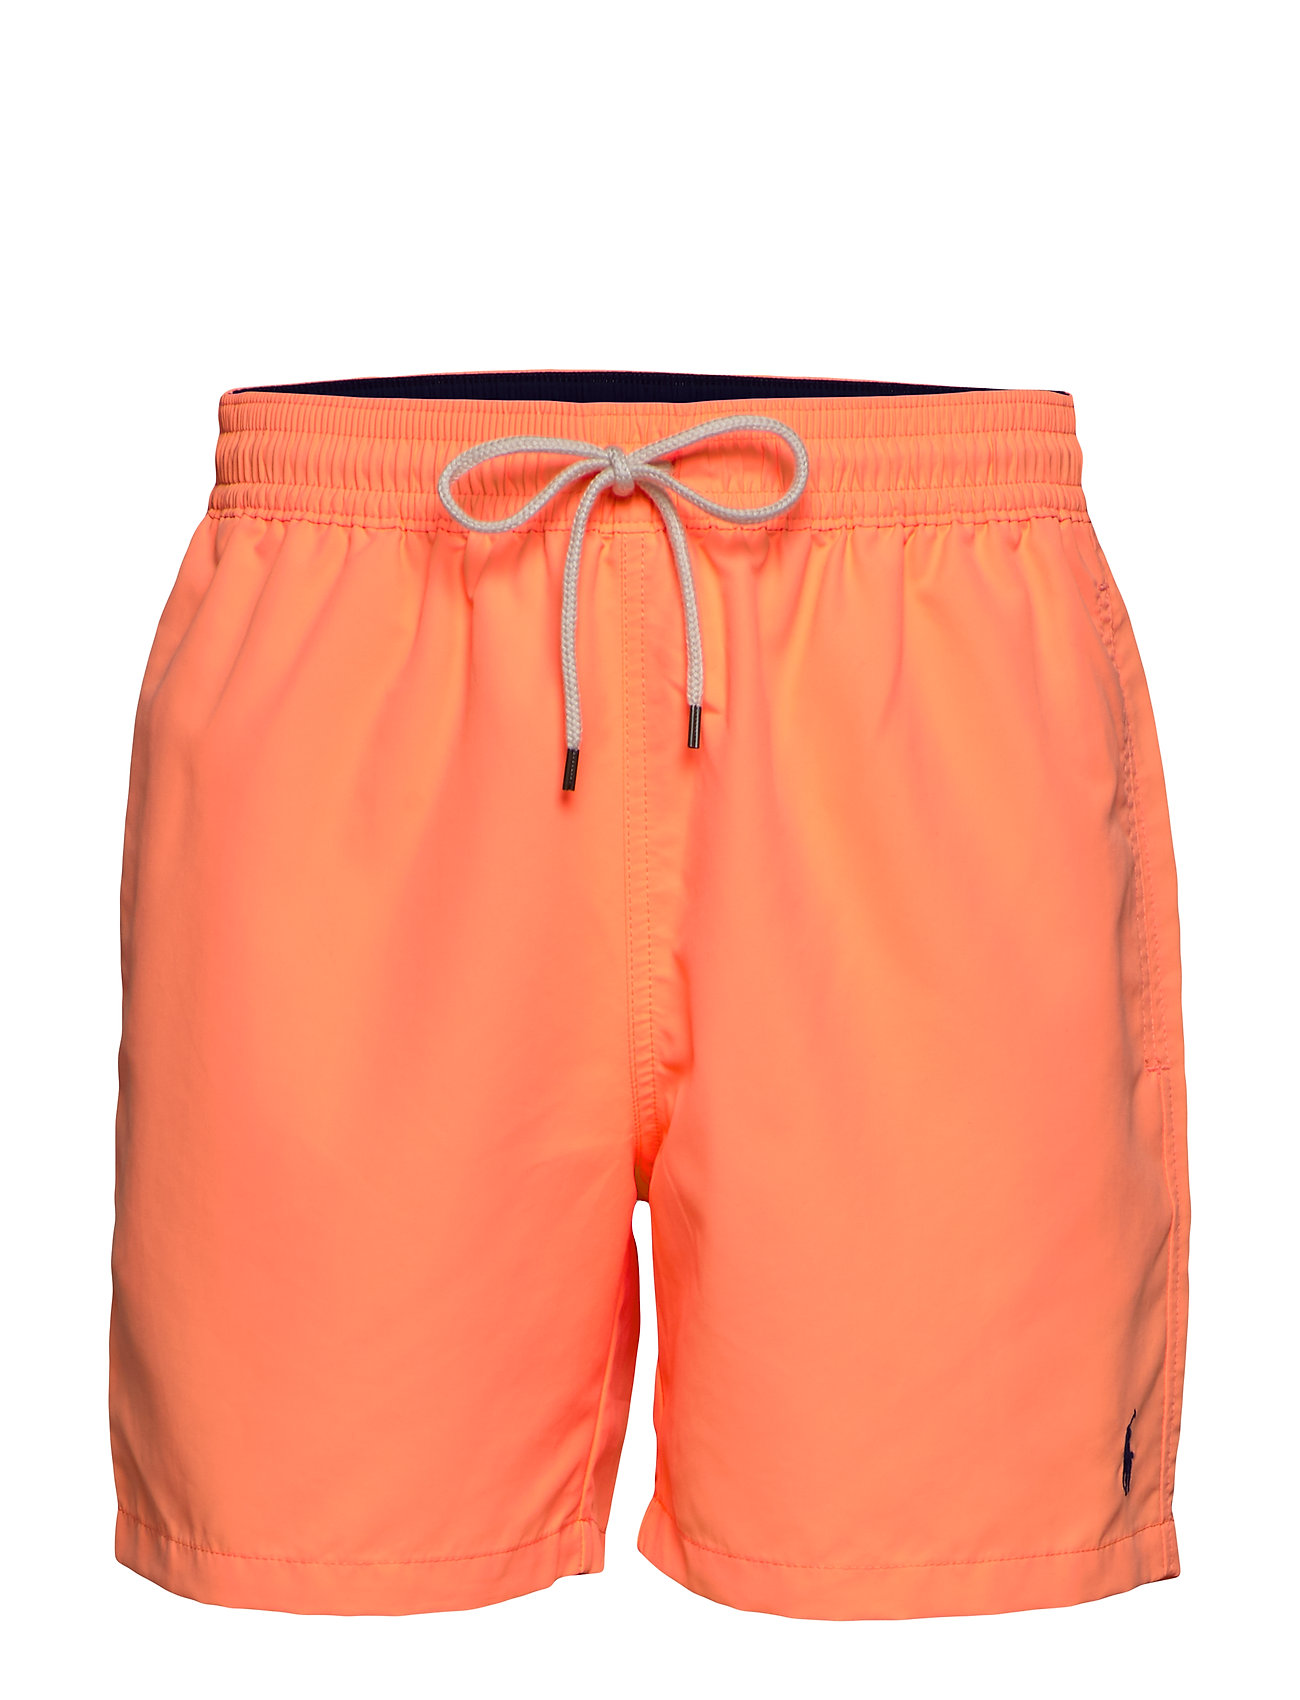 Polo Ralph Lauren 5½-Inch Traveler Swim Trunk - ORANGE SPLASH